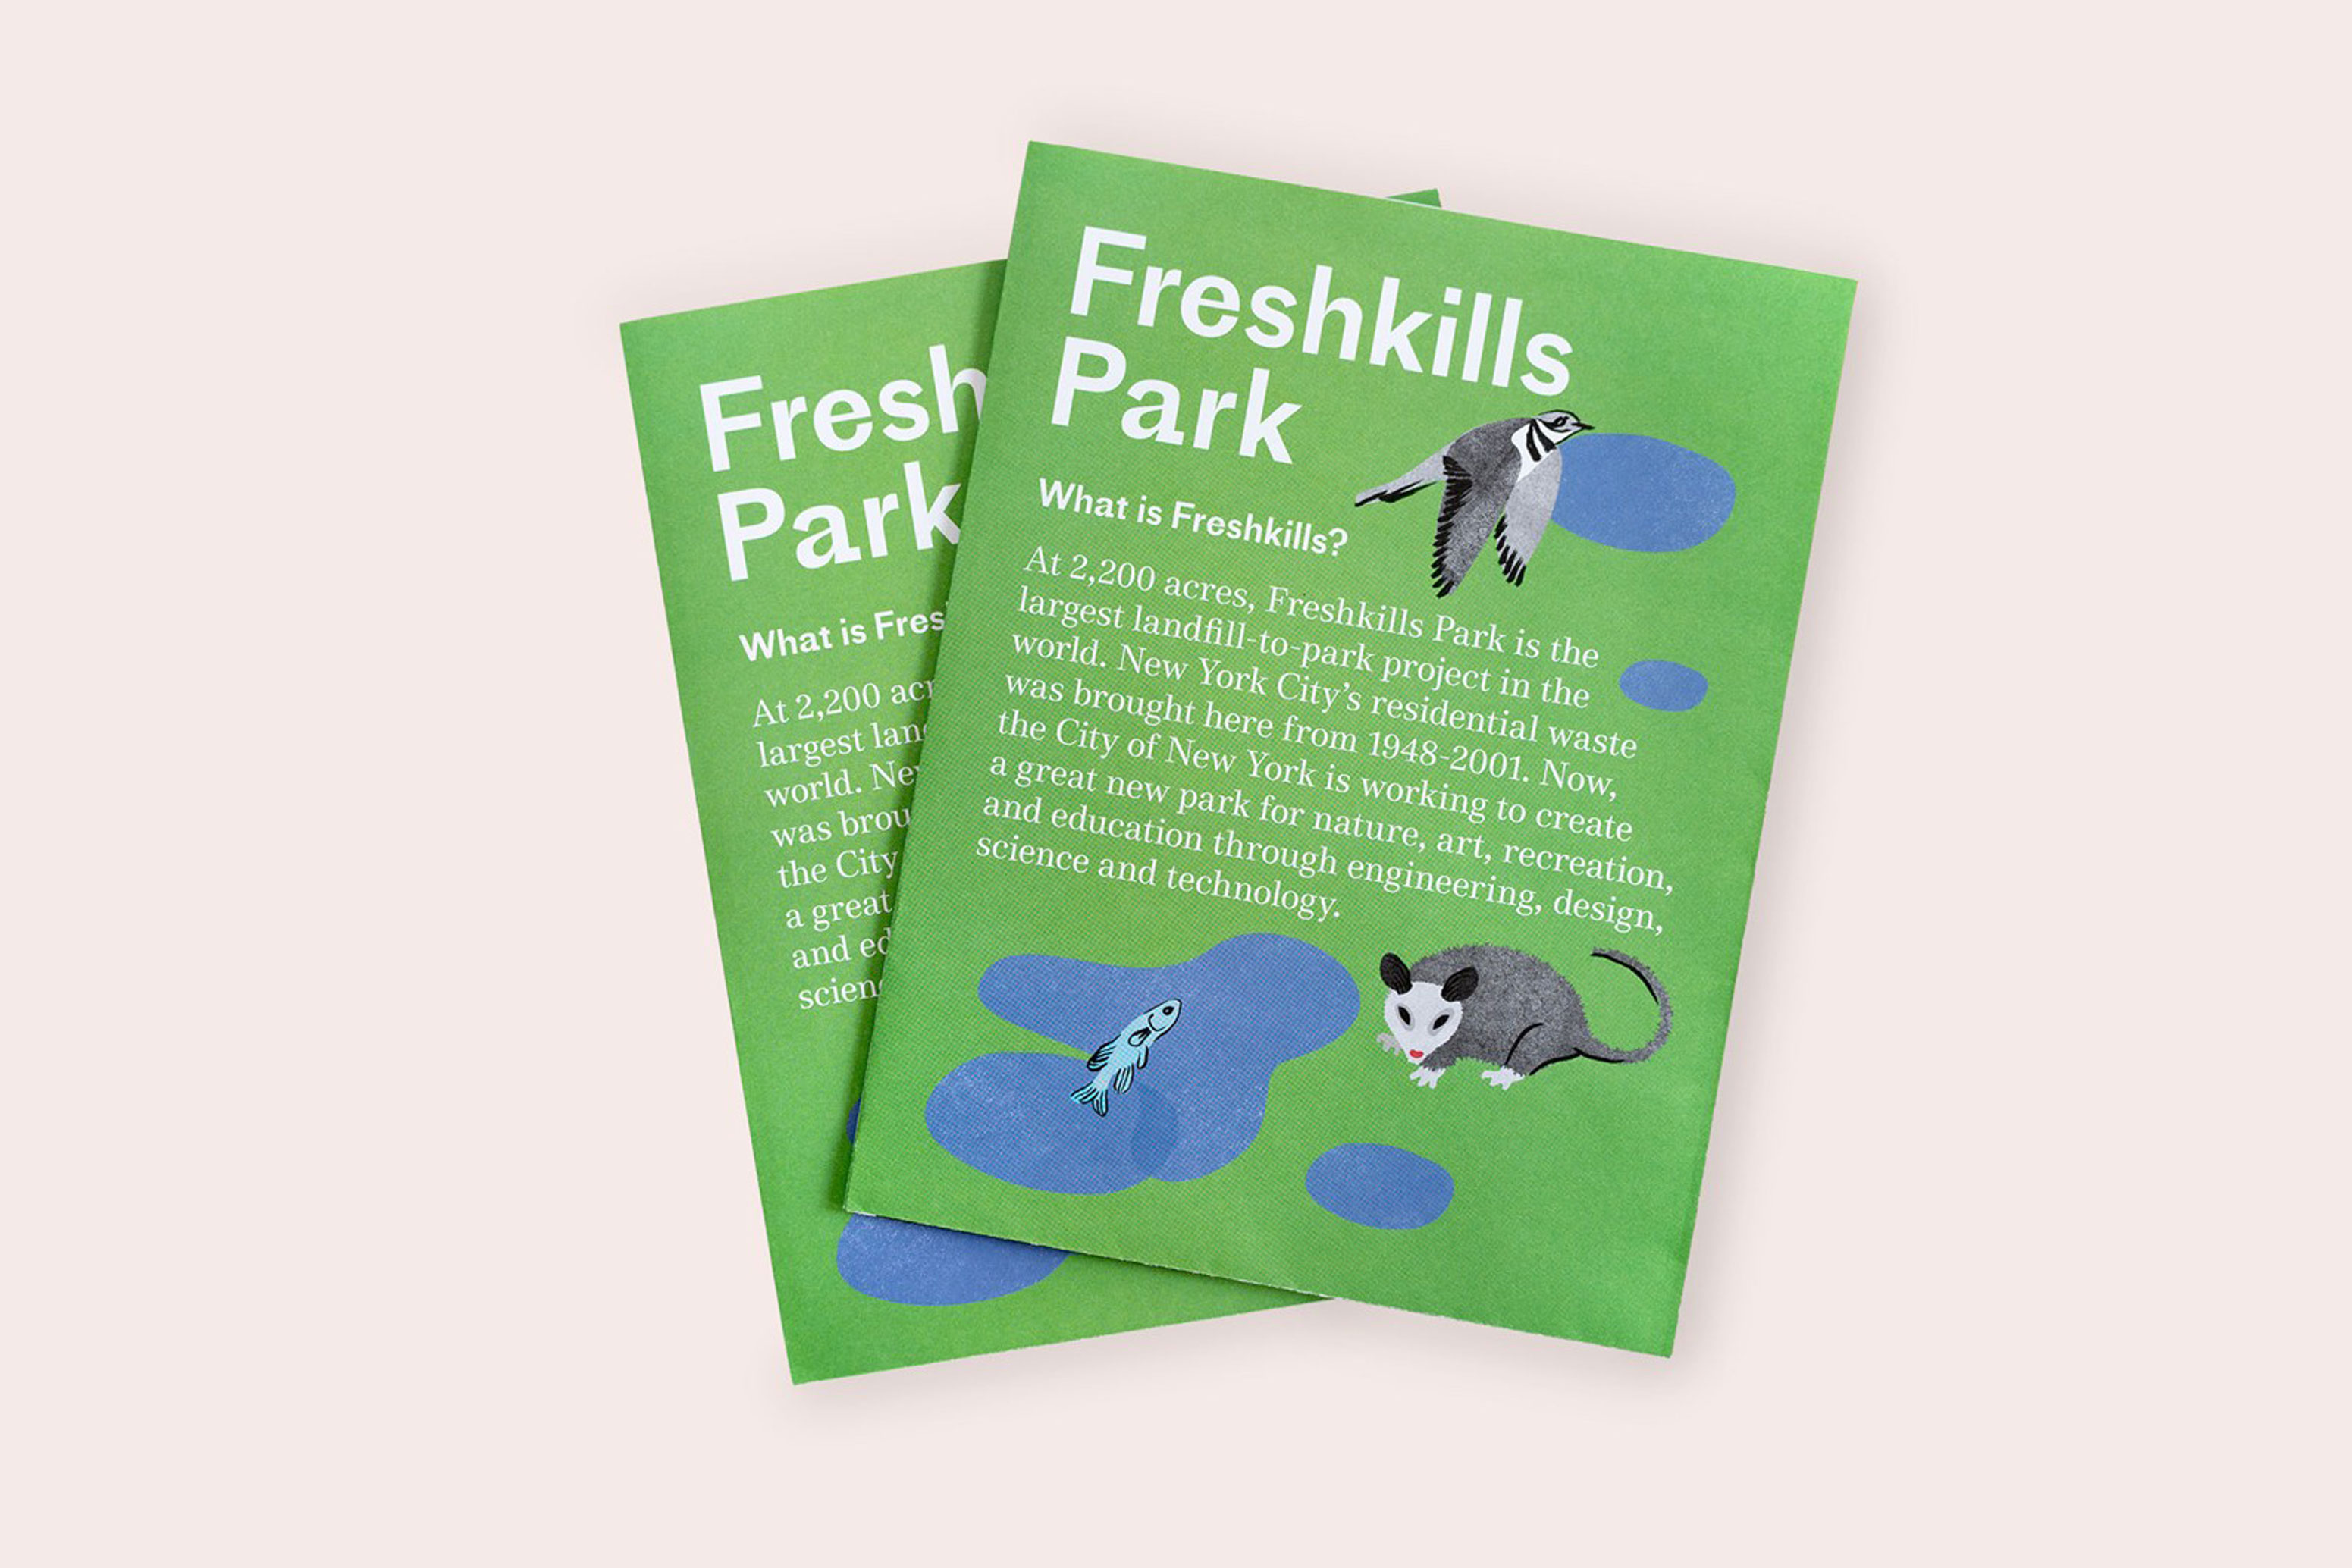 Cover of the Freshkills Park Publication